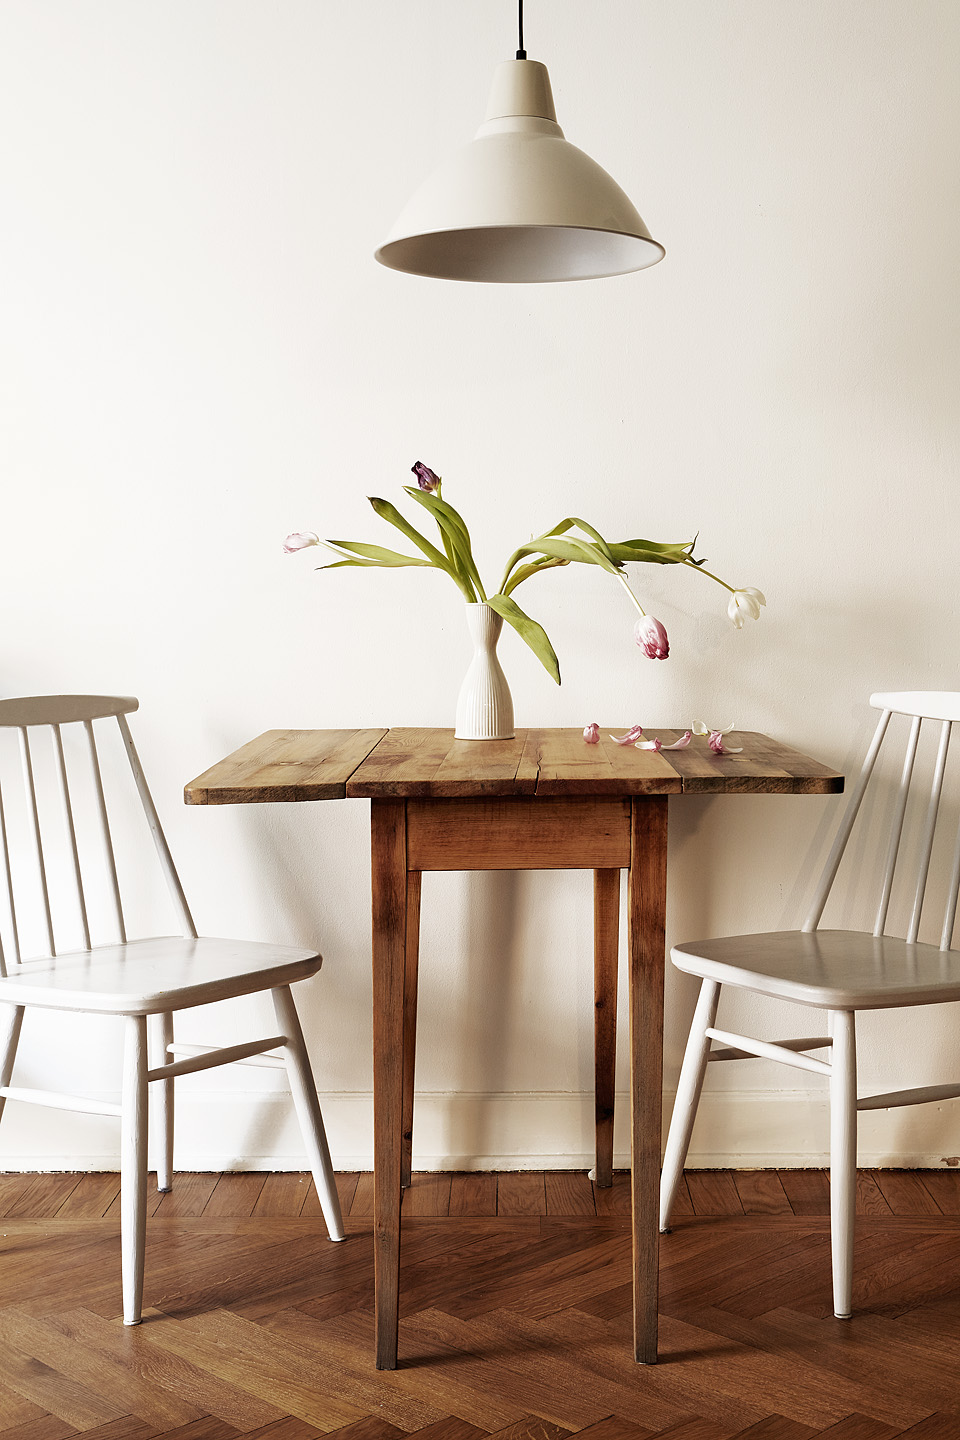 Utvalda selected interiors 2015 2 fantastic franks blog for Eating tables for small spaces